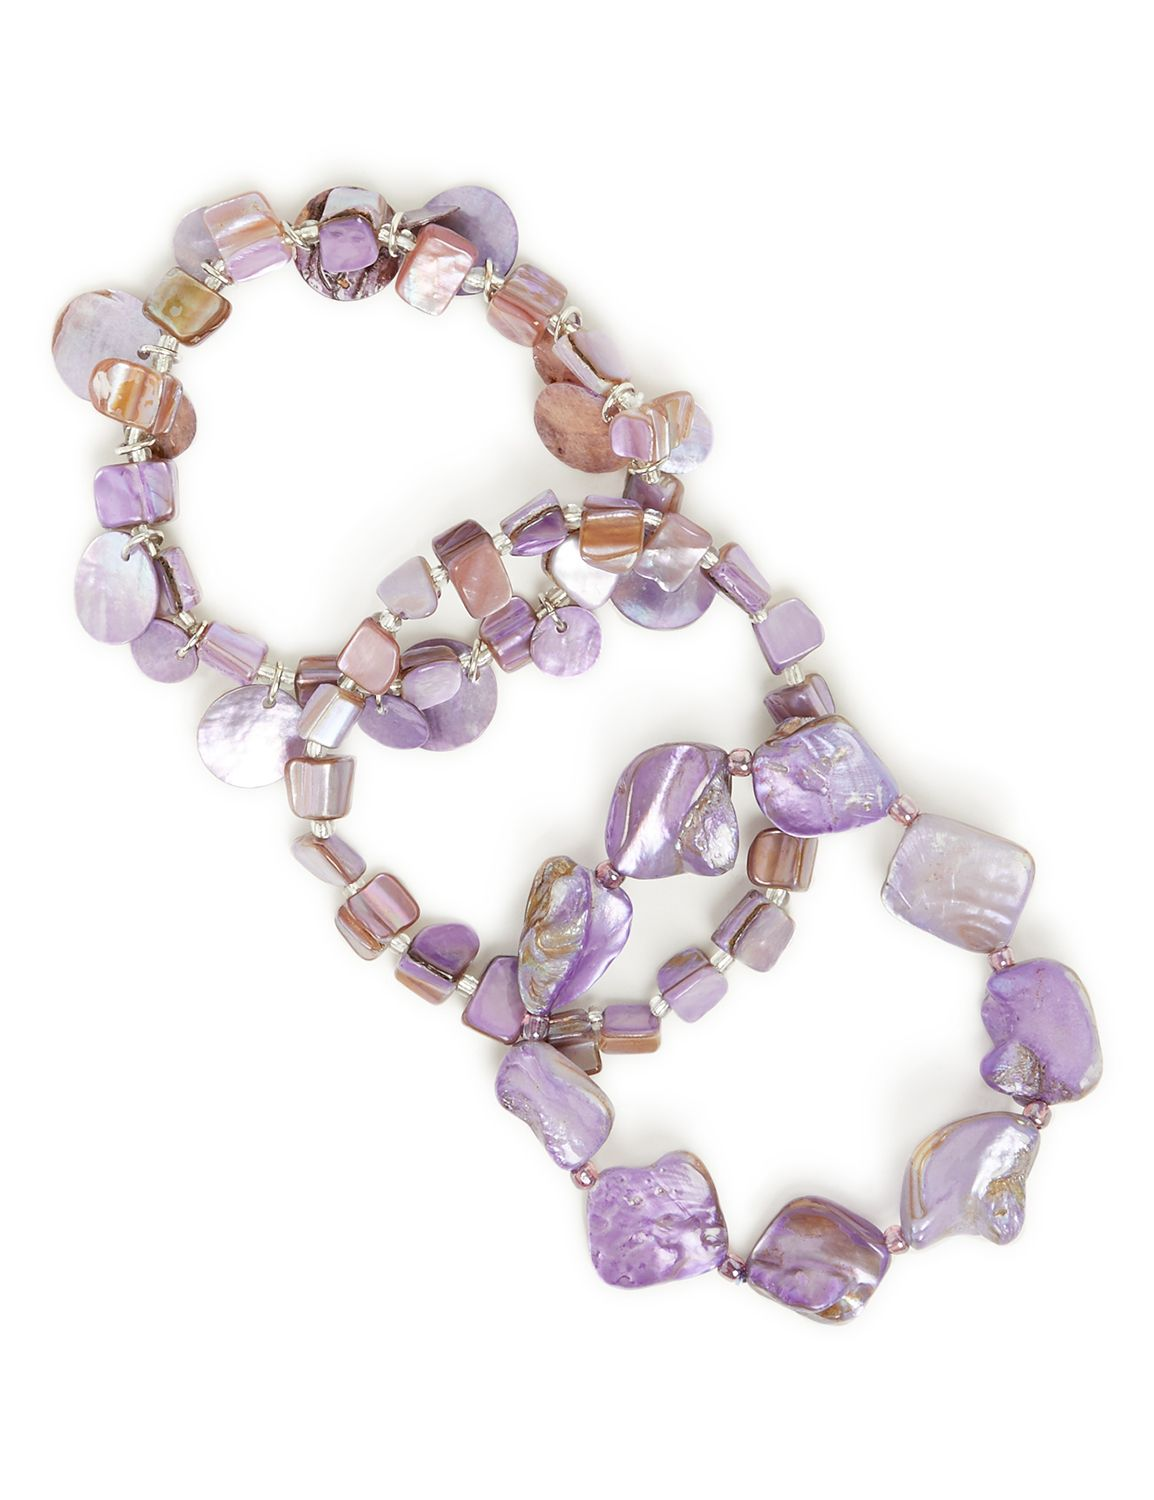 Lilac Seashell Bracelets LM 3row shell purp BR KT0721B161 MP-300099956